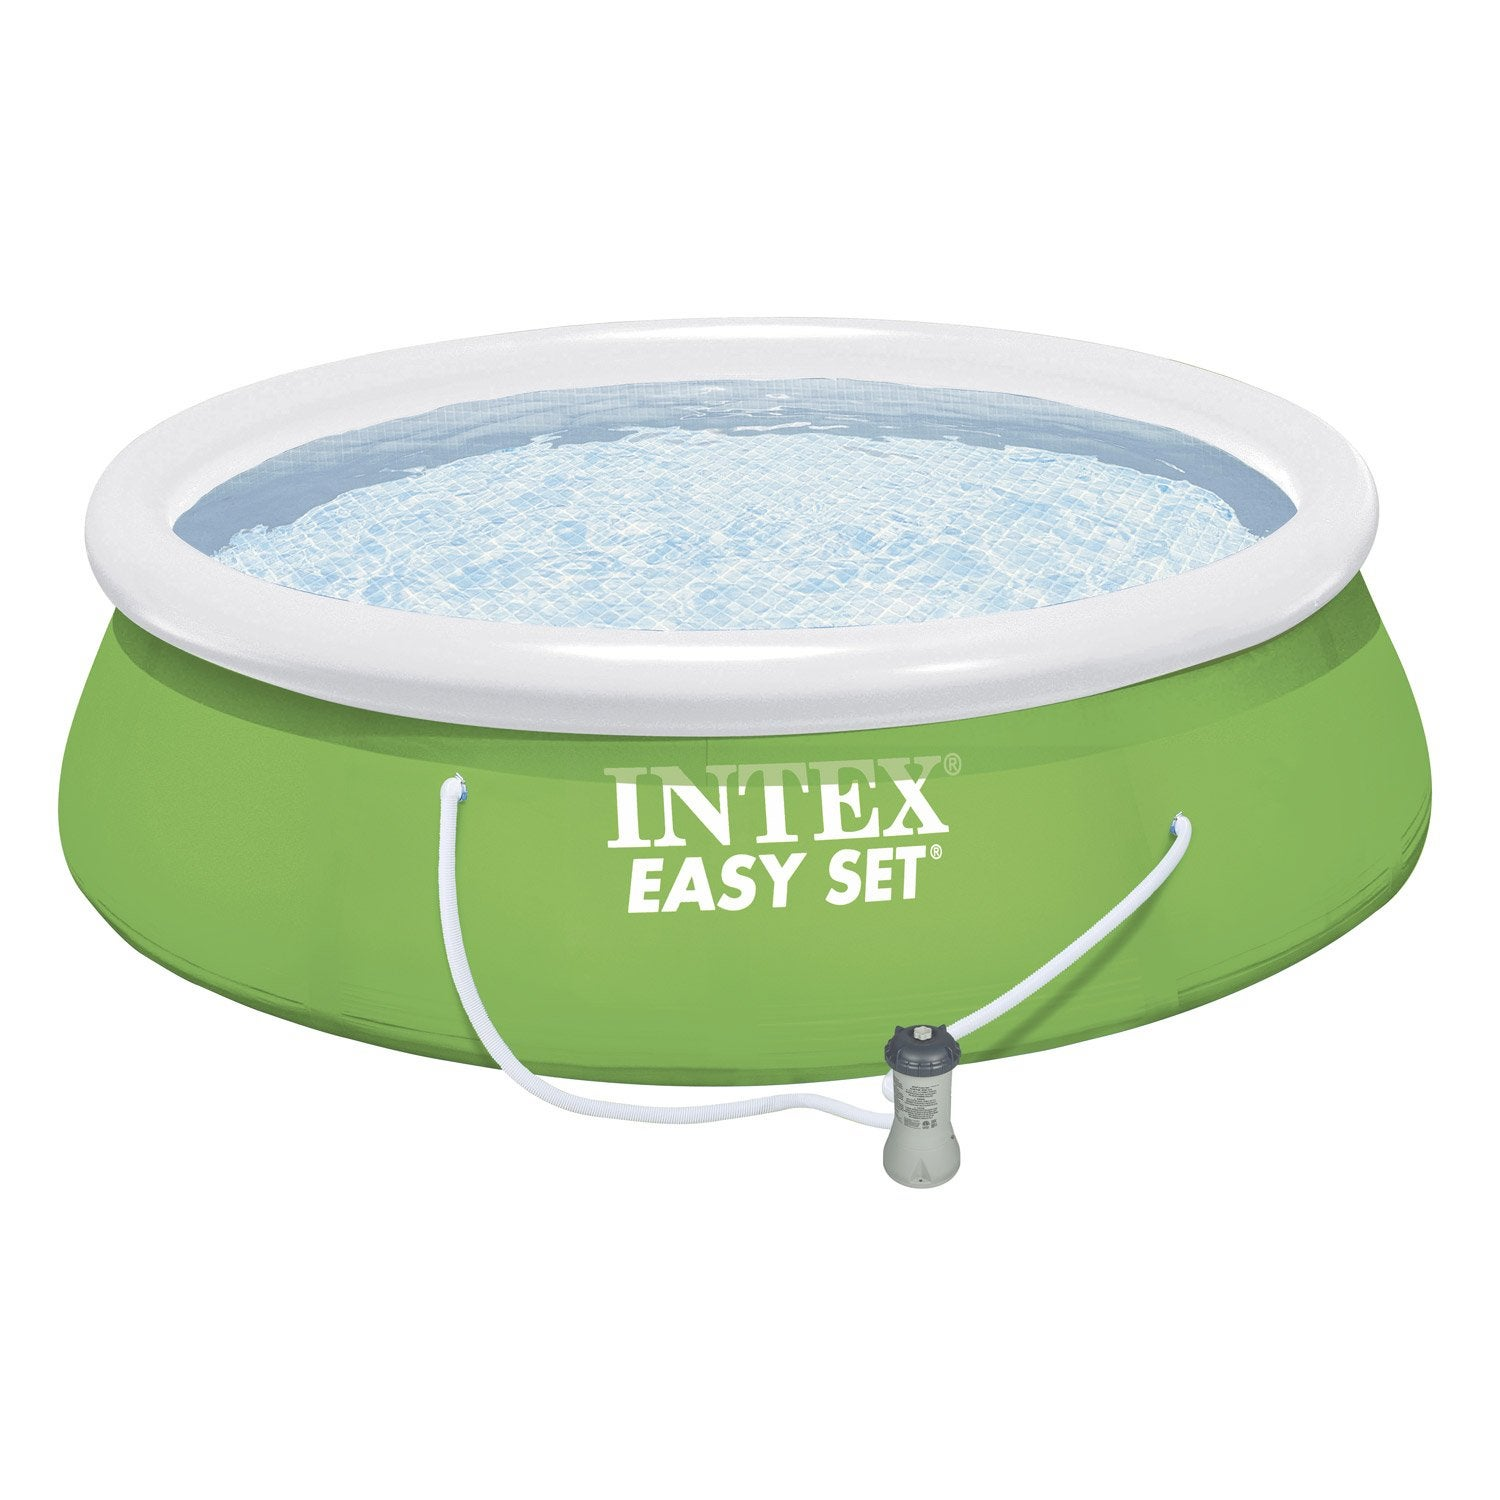 Piscine hors sol autoportante gonflable easy set intex for Grande piscine ronde hors sol